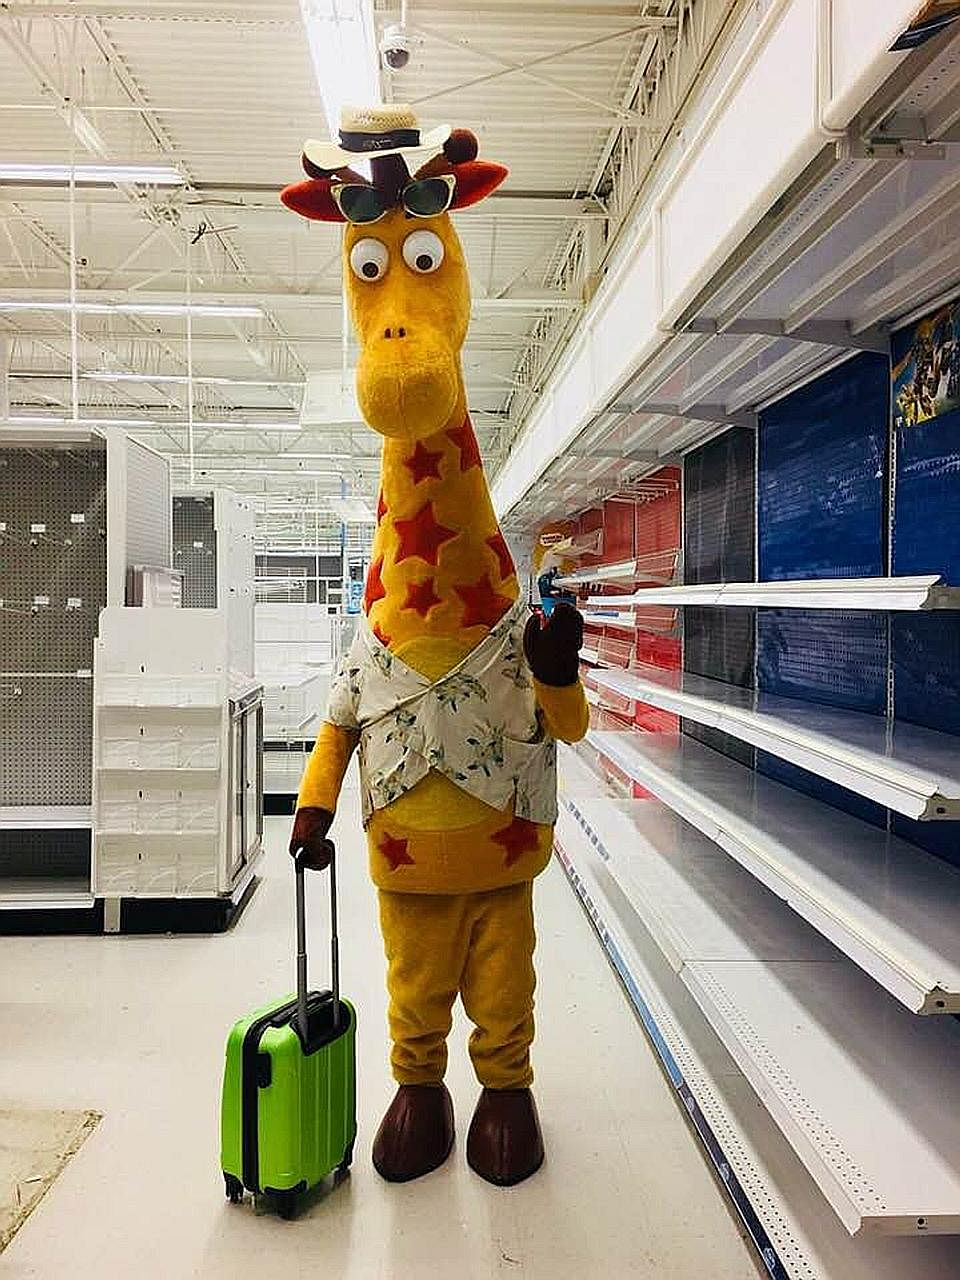 This photo of mascot Geoffrey the Giraffe leaving an empty Toys 'R' Us store has gone viral, as the iconic toy retailer closed the last of its 735 outlets across the United States.